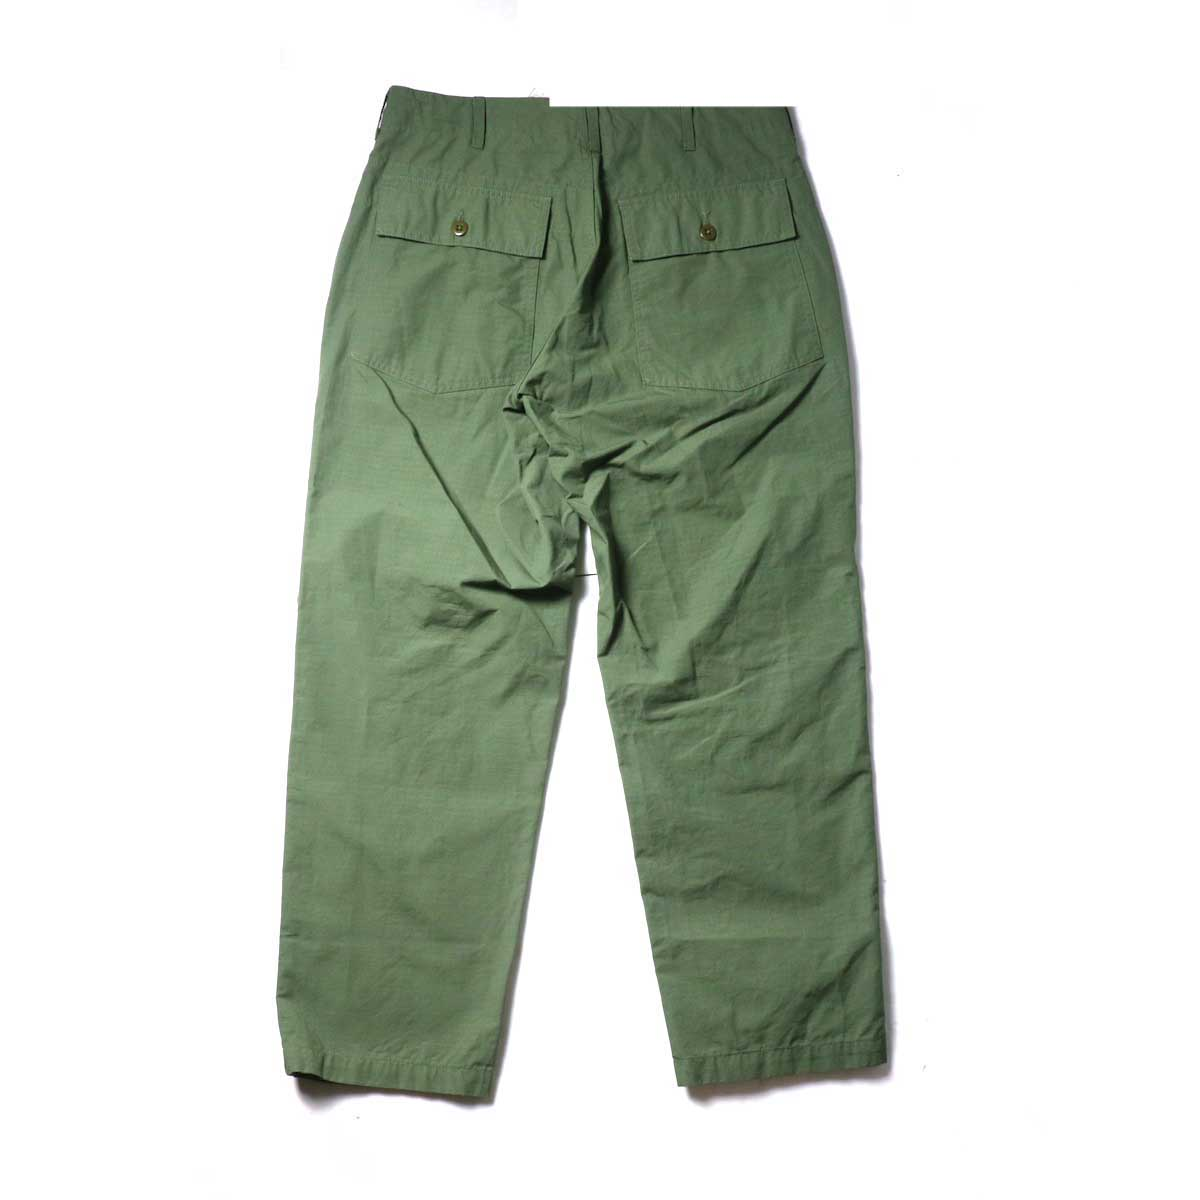 Engineered Garments / Fatigue Pant - Cotton Ripstop (Olive)背面